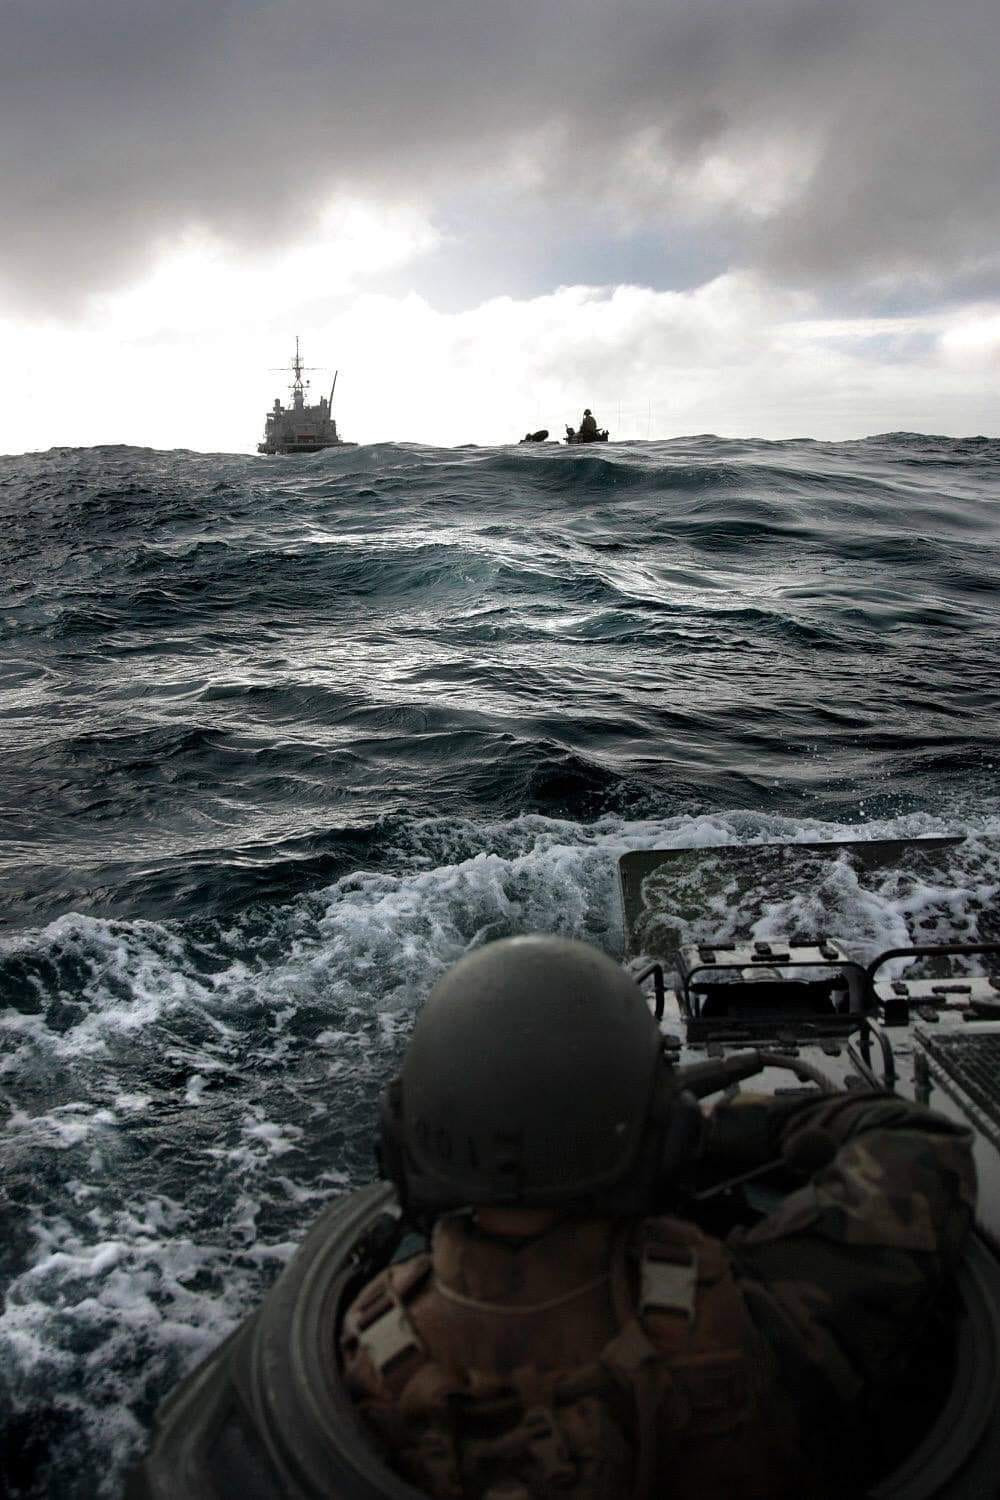 Cody Bledsoe submitted this photo from a training exercises in the North Sea in 2015.